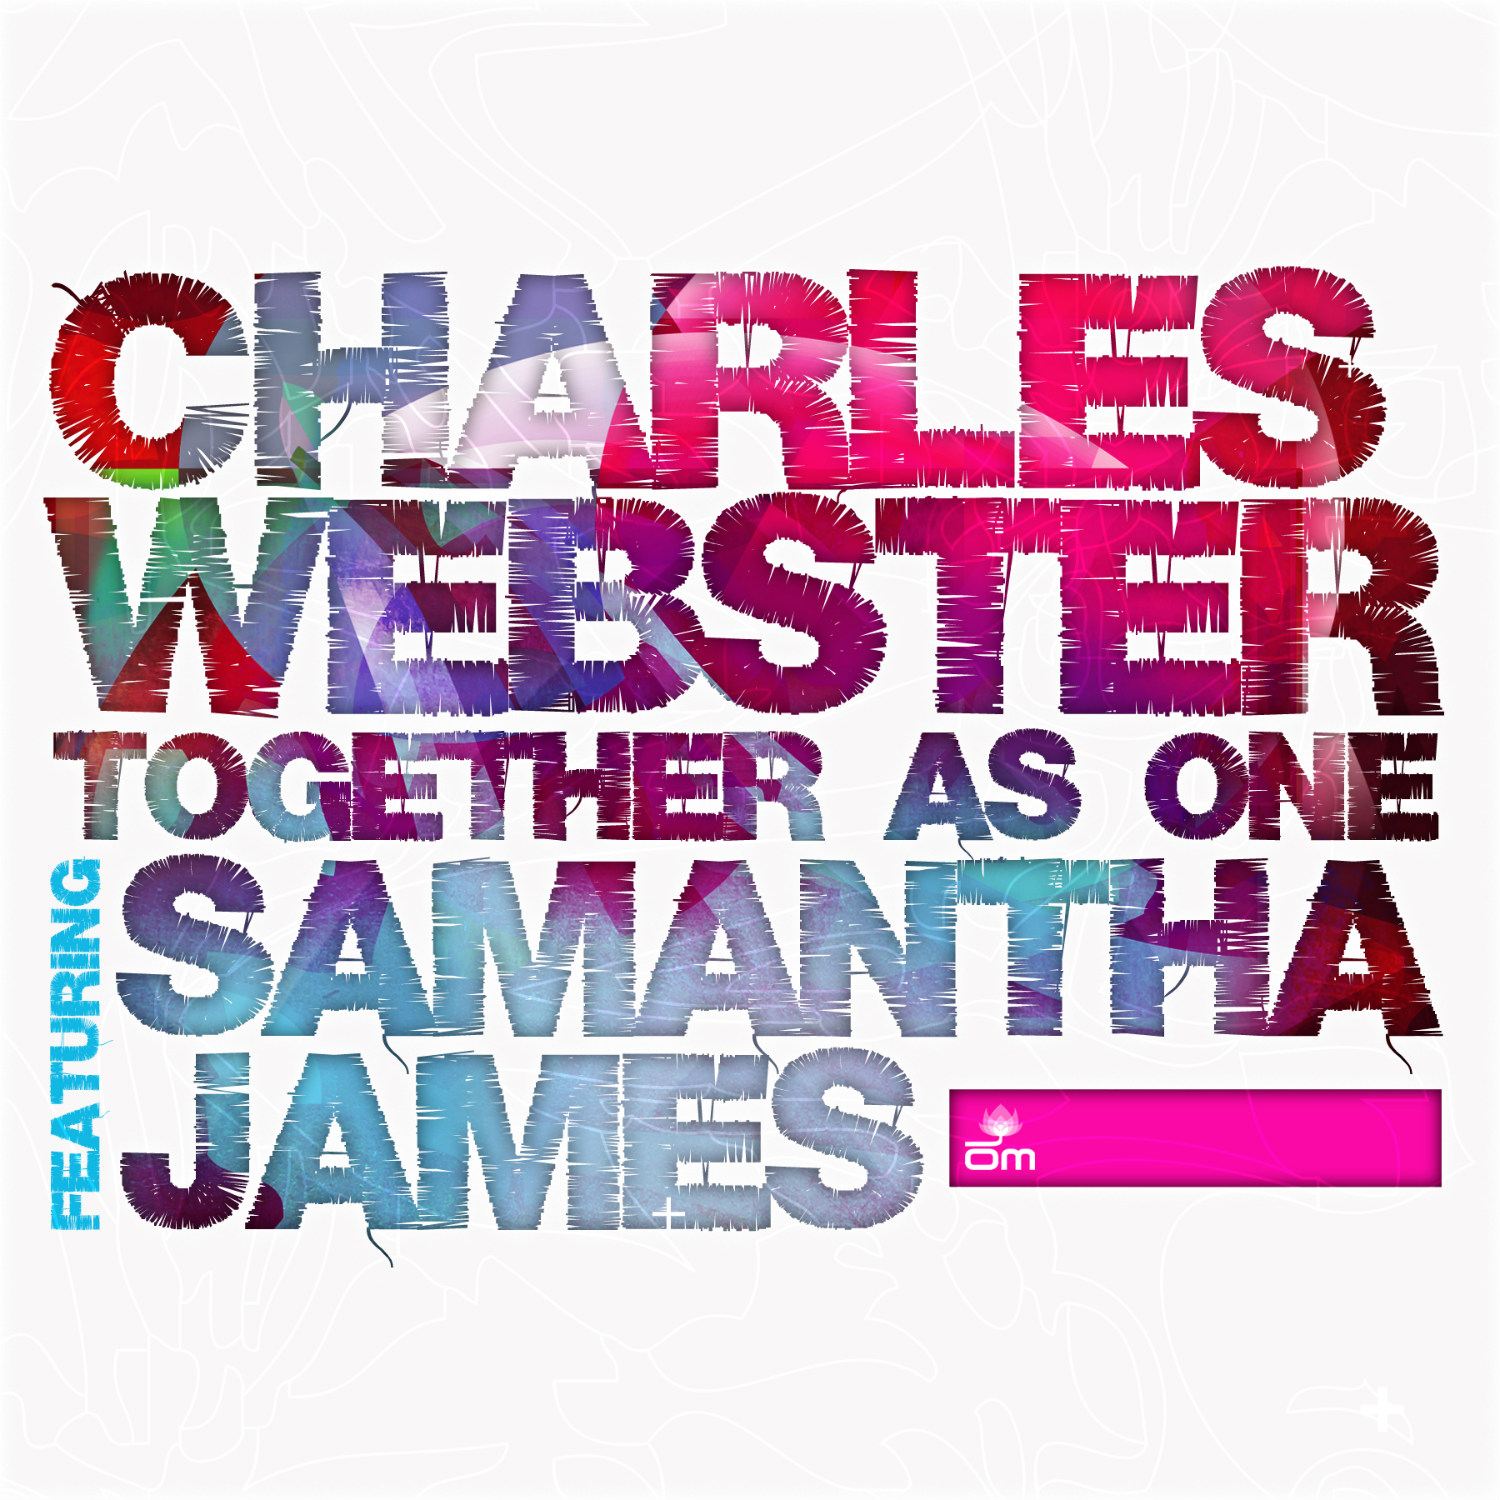 Samantha James & Charles Webster (Together as One)